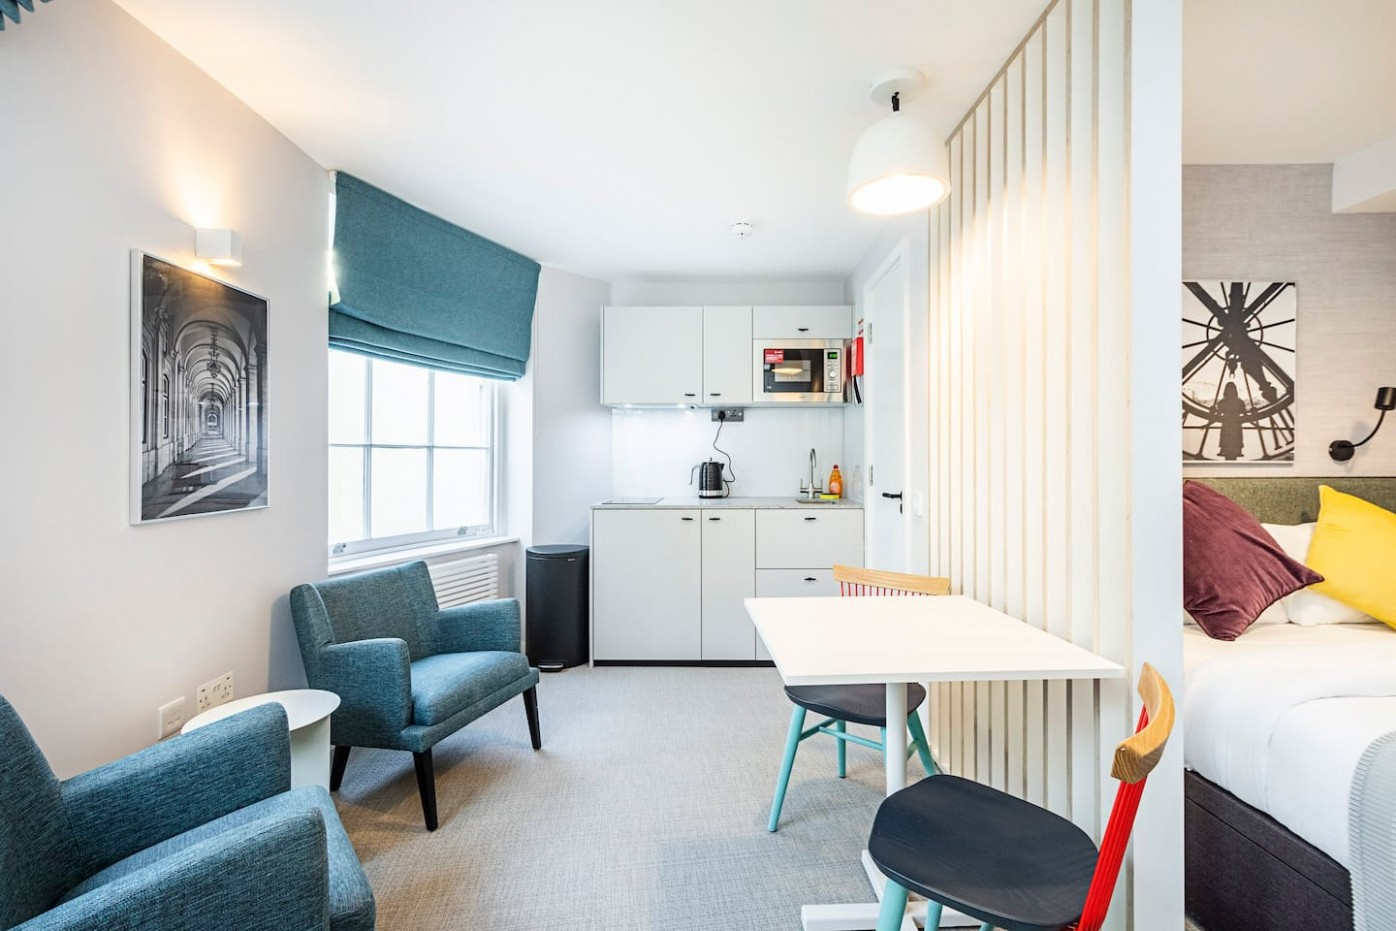 Luxury Studio near London Zoo - Apartments for Rent in Greater  - Design Zoo Apartment